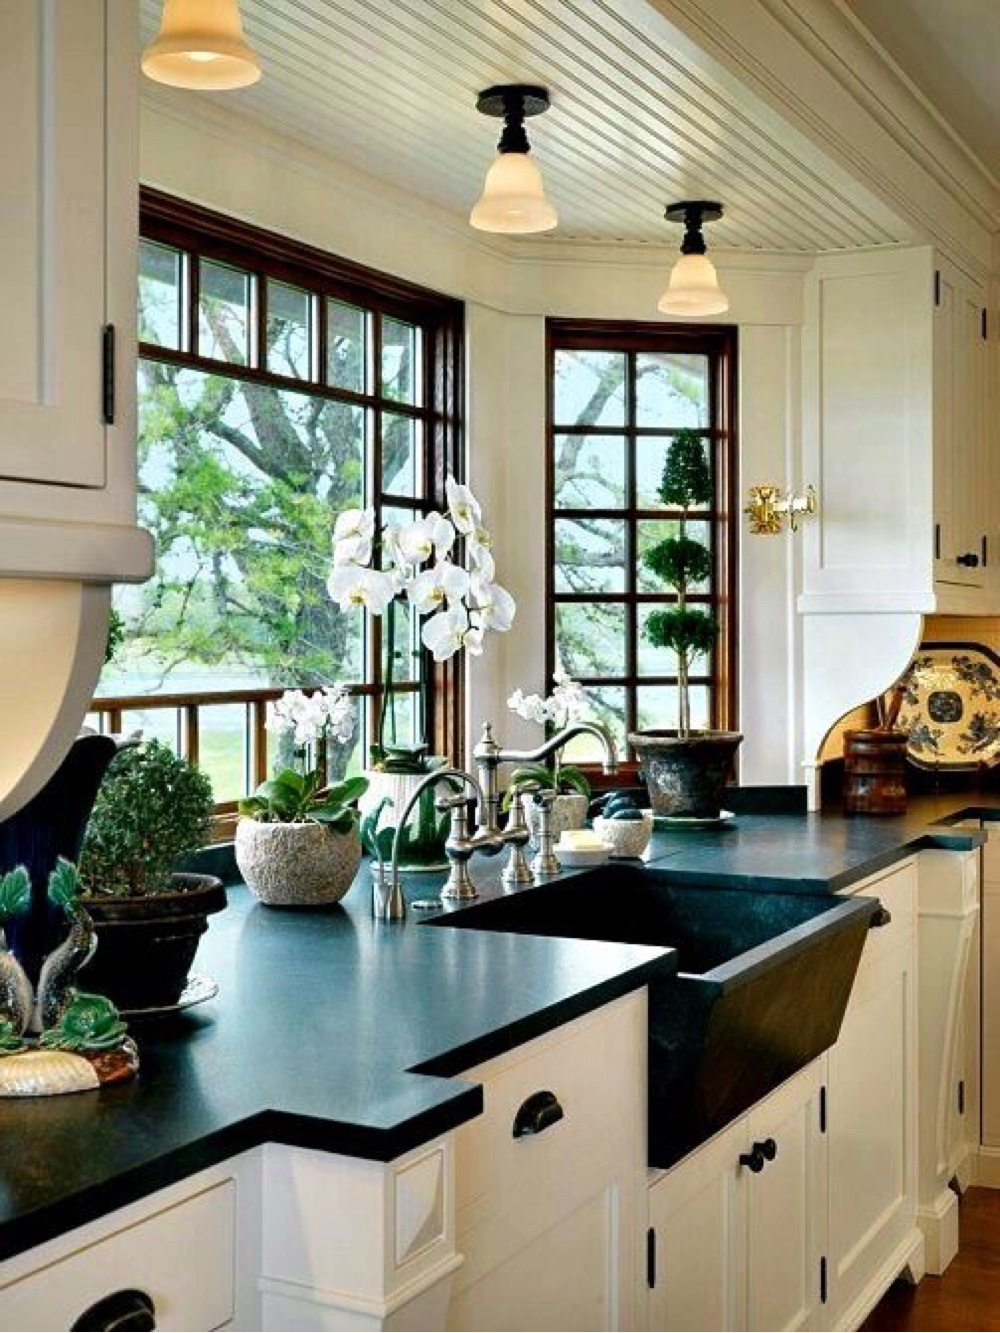 23 Best Rustic Country Kitchen Design Ideas and ...